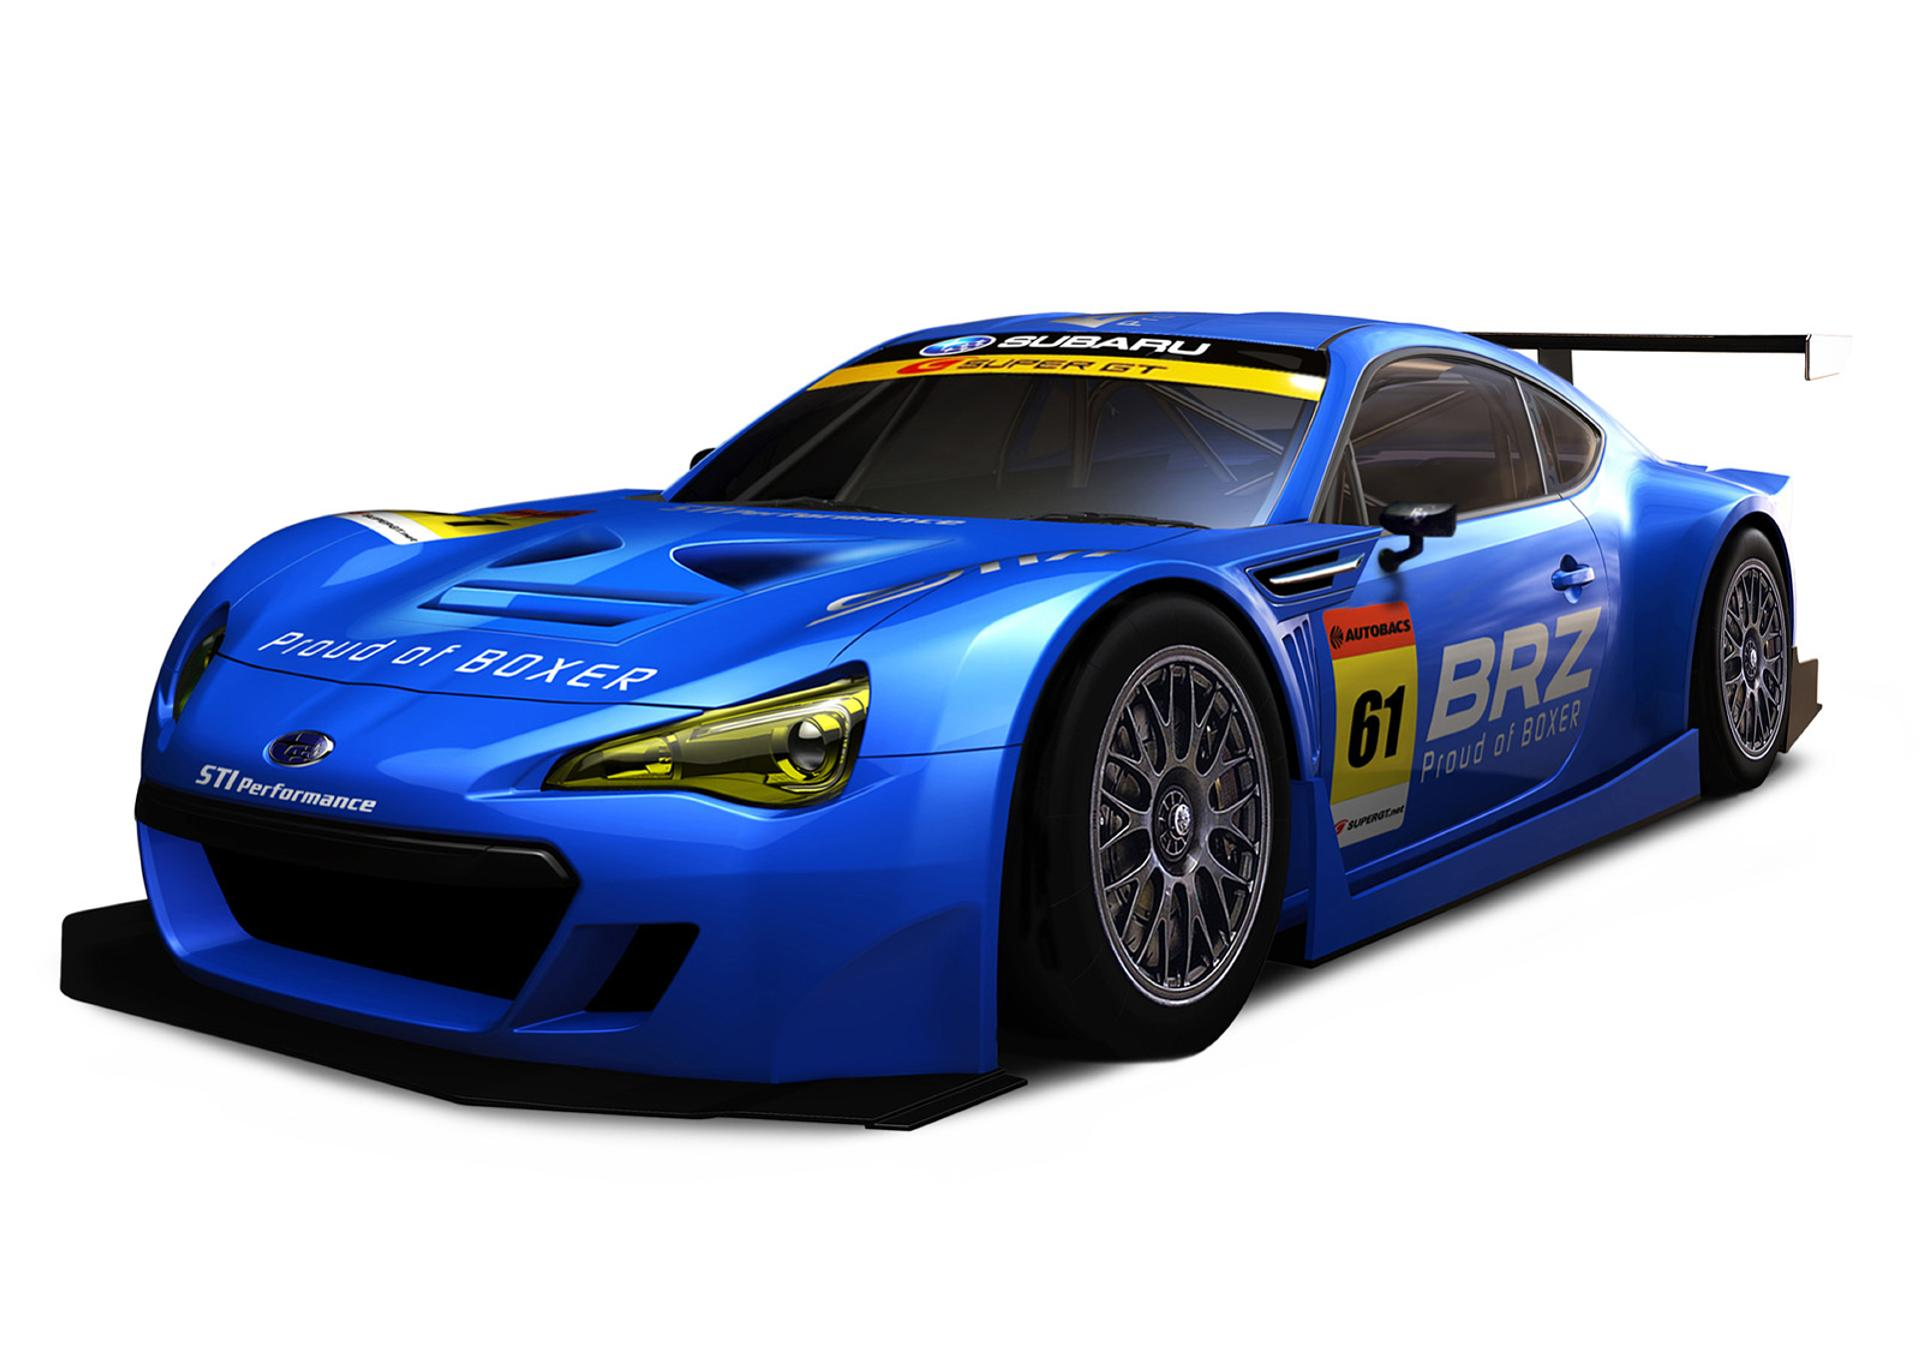 2012 Subaru BRZ GT300 Pictures, News, Research, Pricing ...